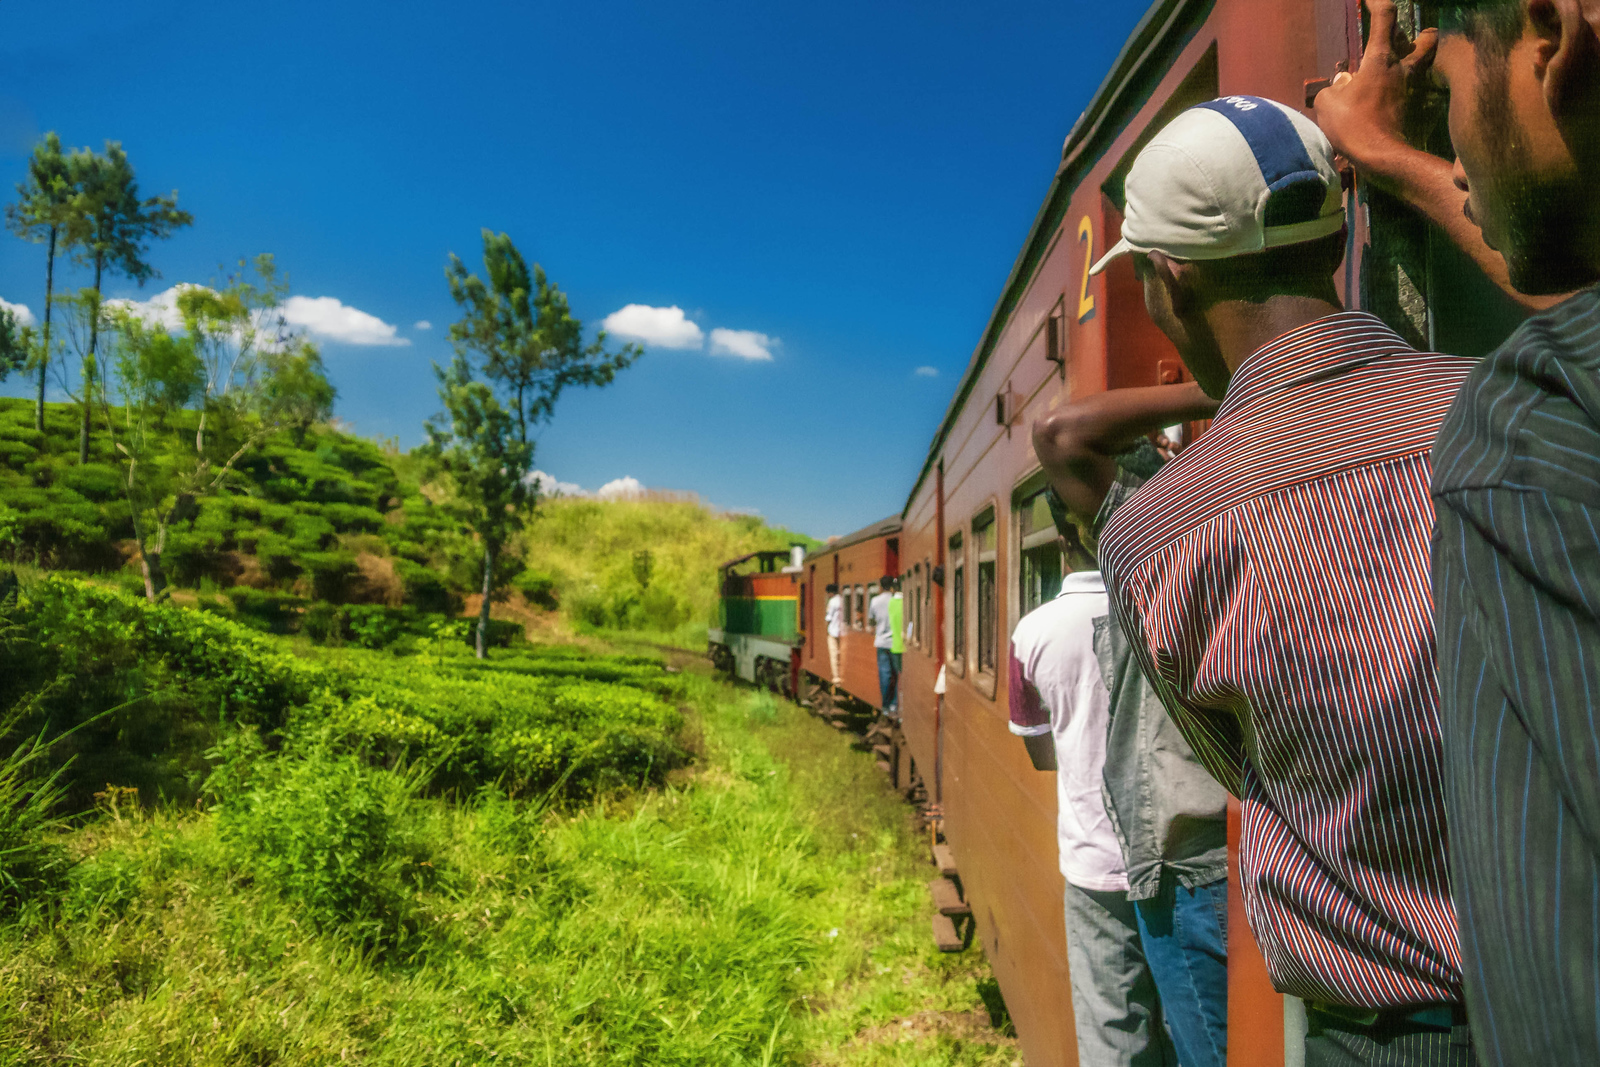 Riding the train is a must do in Sri Lanka.